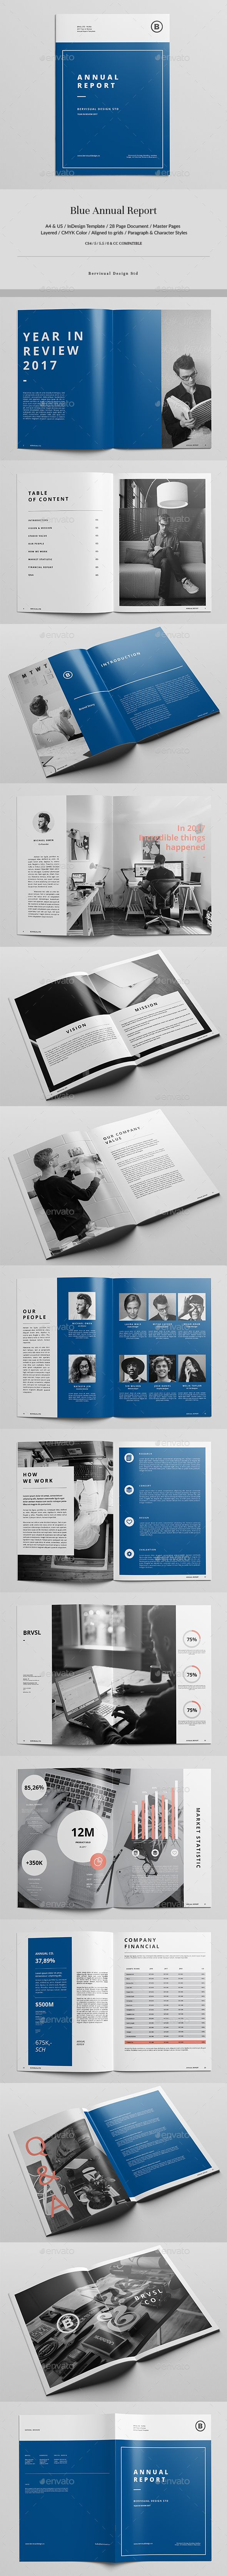 Blue Report Template — InDesign INDD #report template #book • Download ➝ https://graphicriver.net/item/blue-report-template/19722783?ref=pxcr